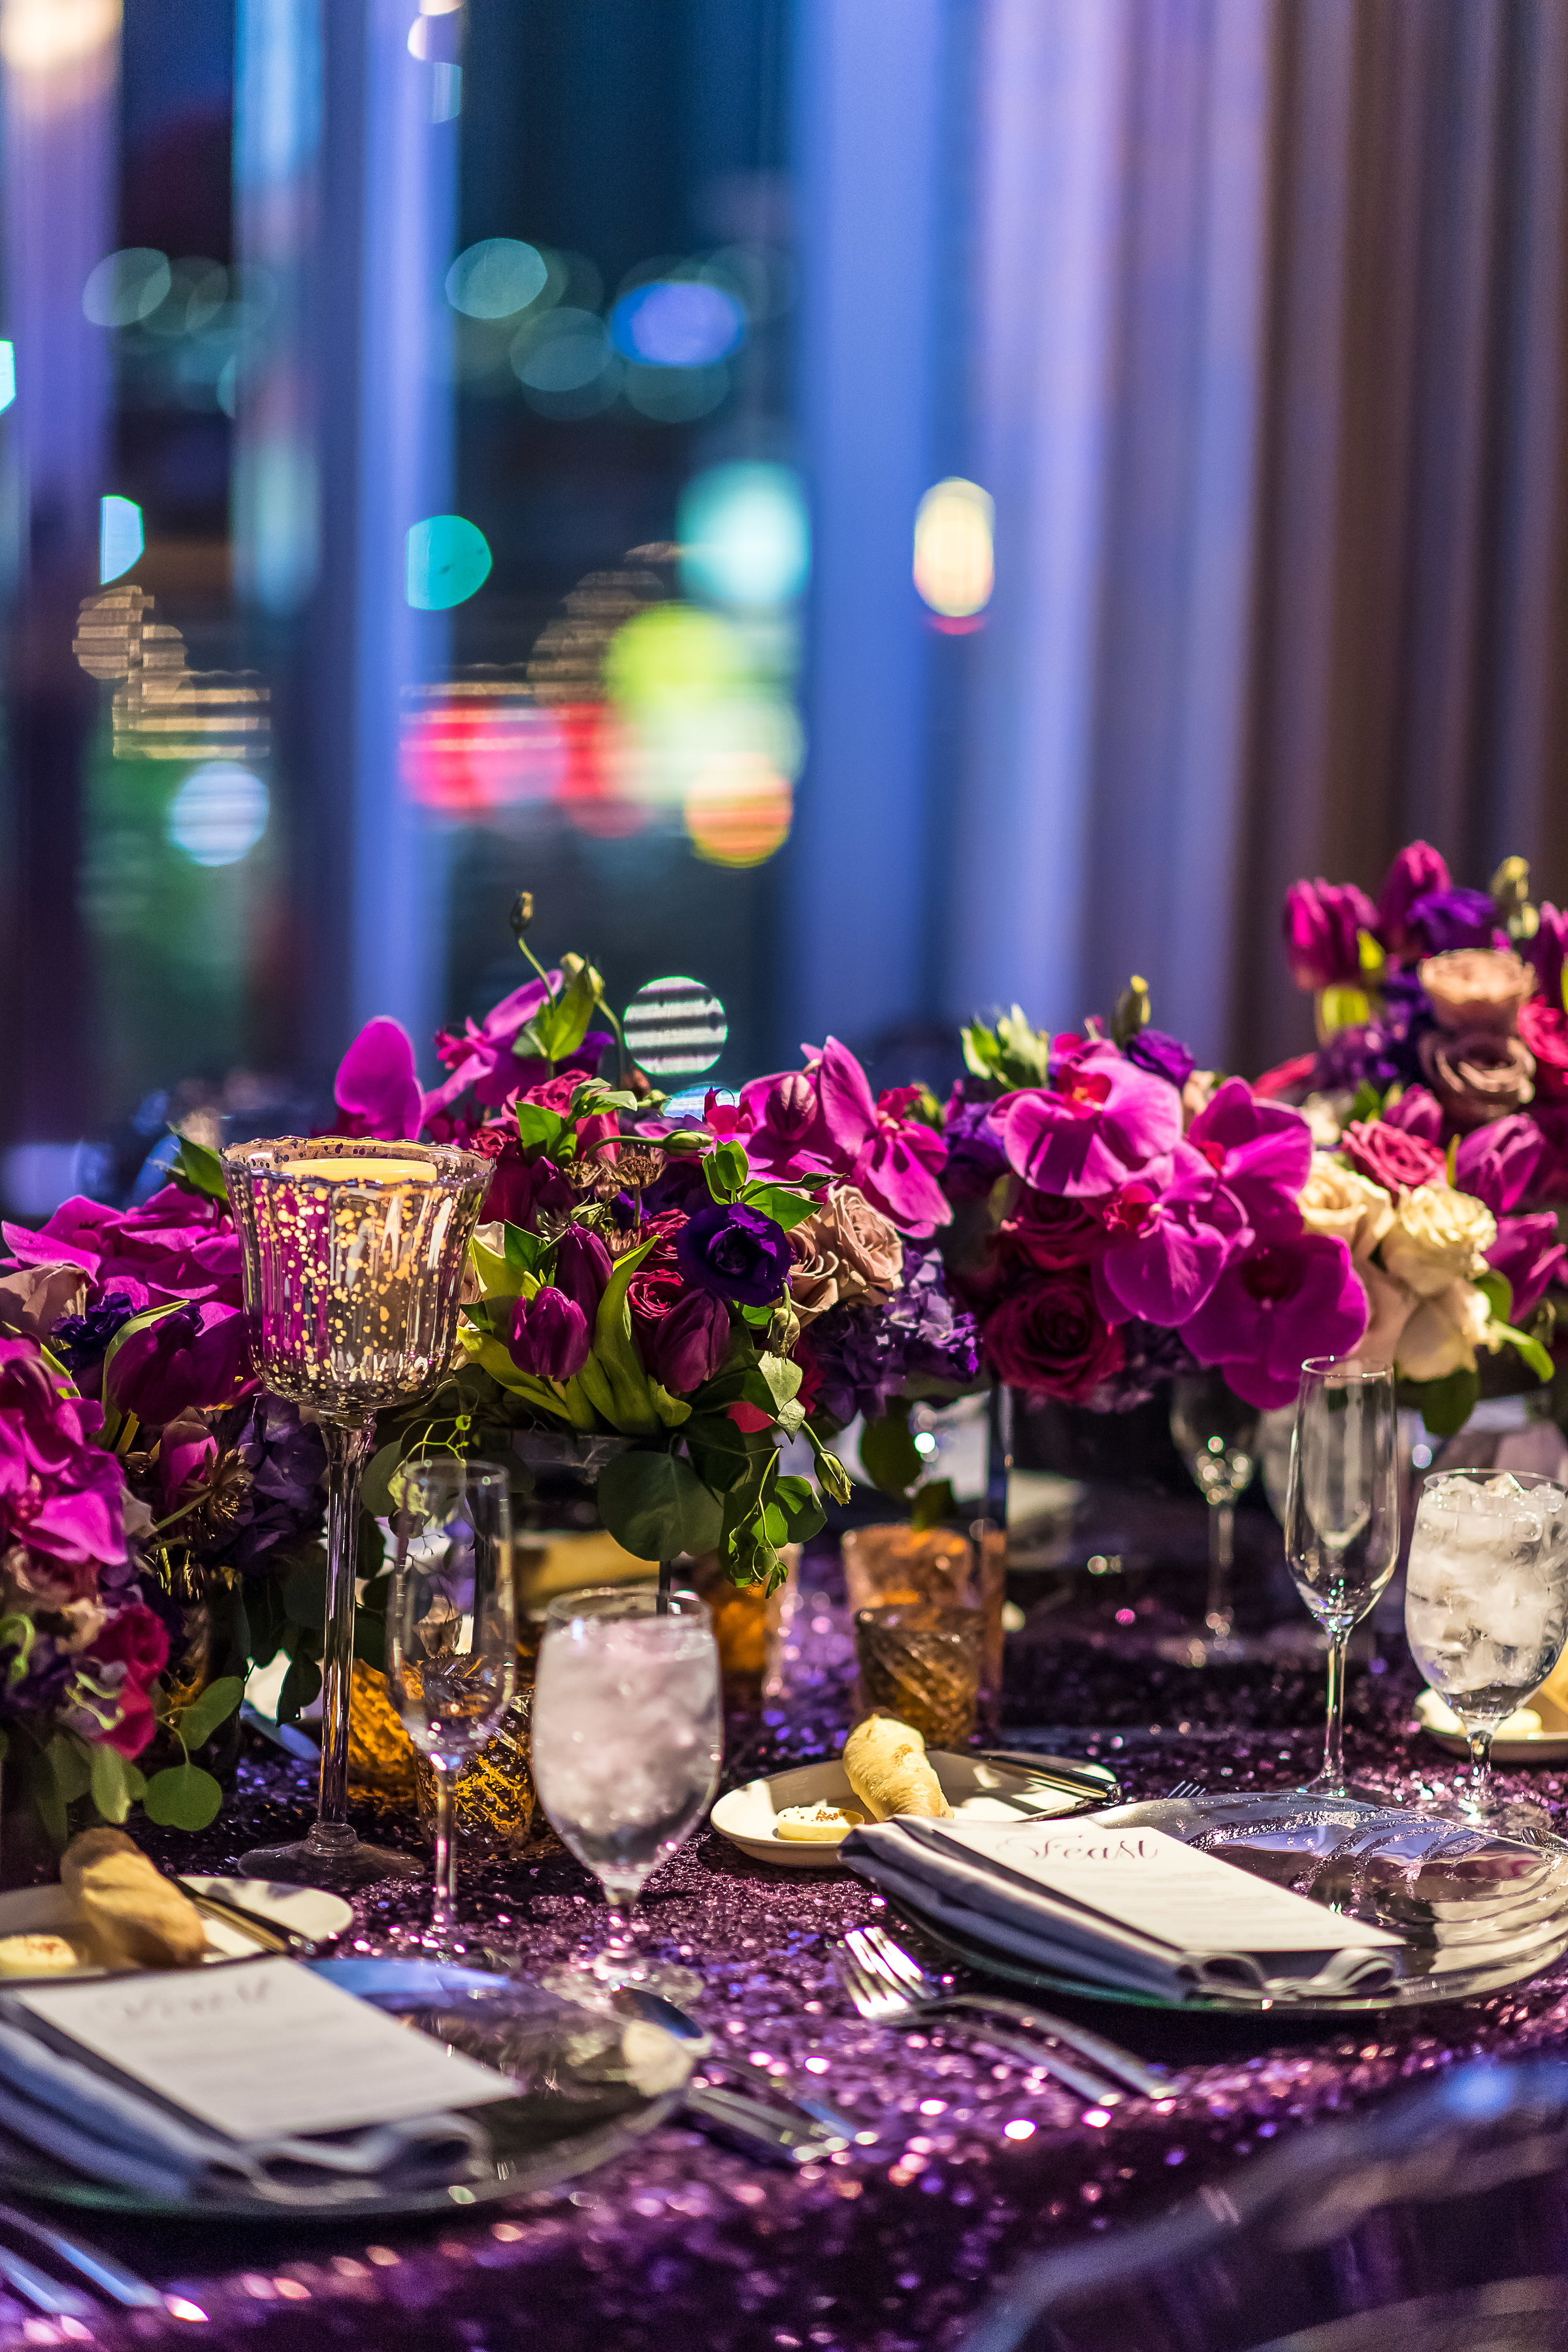 Long tables with low centerpieces with purple and pink flowers.Wedding Planner: Andrea Eppolito Events    Photography  Brian Leahy    Videography  HOO Films    Venue & Catering: Mandarin Oriental / Waldorf Astoria   Floral & Decor: Destinations by Design    Lighting: LED Unplugged    Music: DJ Breeze II    Hair & Make Up: Amelia C & Co    Invitations by  Bliss & Bone    Menu and Escort Cards by  Meldeen